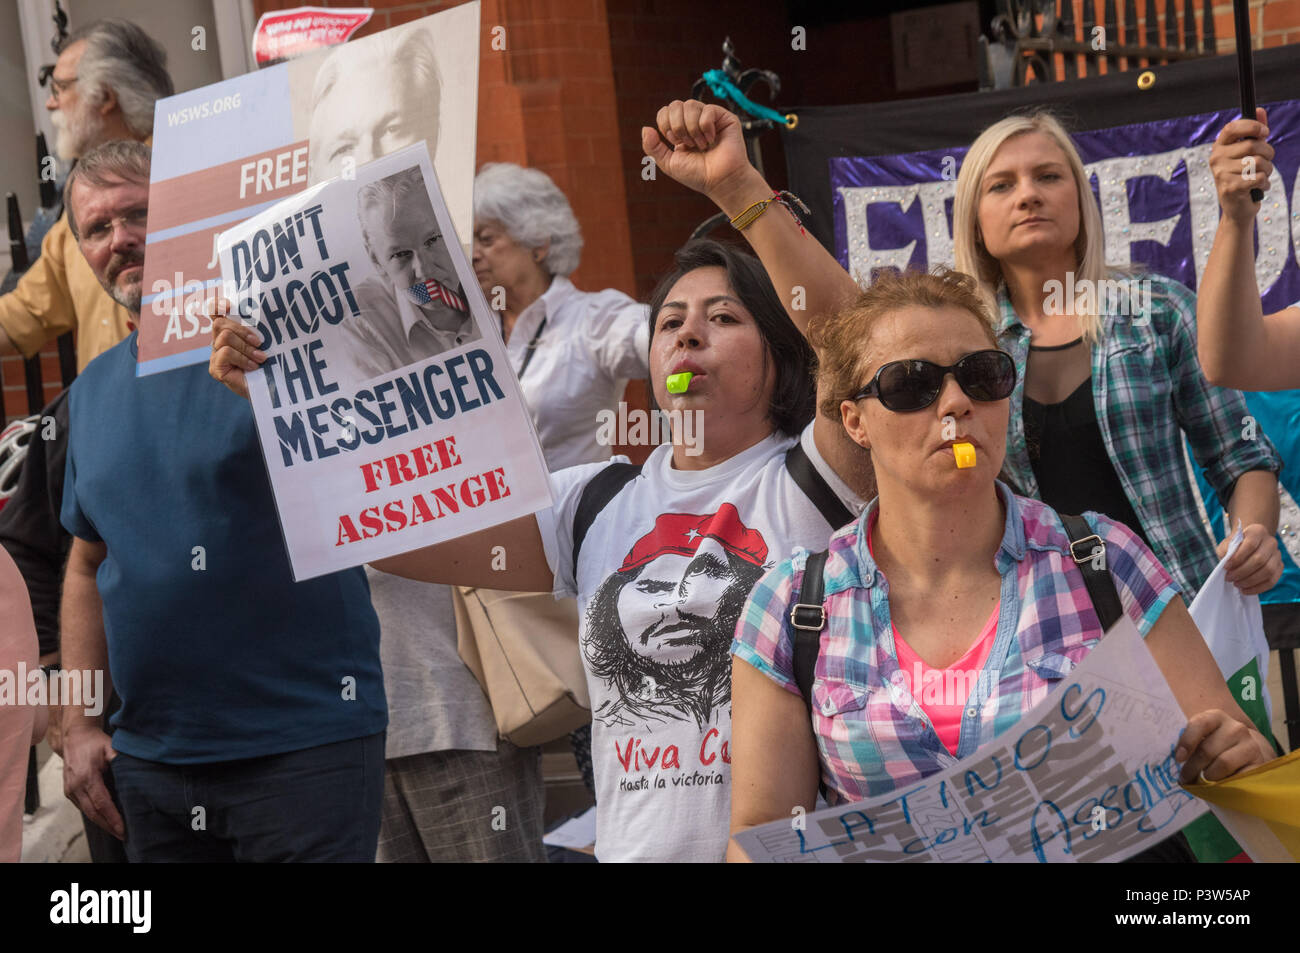 London, UK. 19th June 2018. Ecuadorians at the protest rally outside the Ecuadorian Embassy in London  calling for Julian Assange to be allowed safe passage to the place of his choice to mark six years since he was given asylum there. They called for the UK authorities to allow him to leave the embassy and go to the country of his choice without being arrested. Credit: Peter Marshall/Alamy Live News - Stock Image